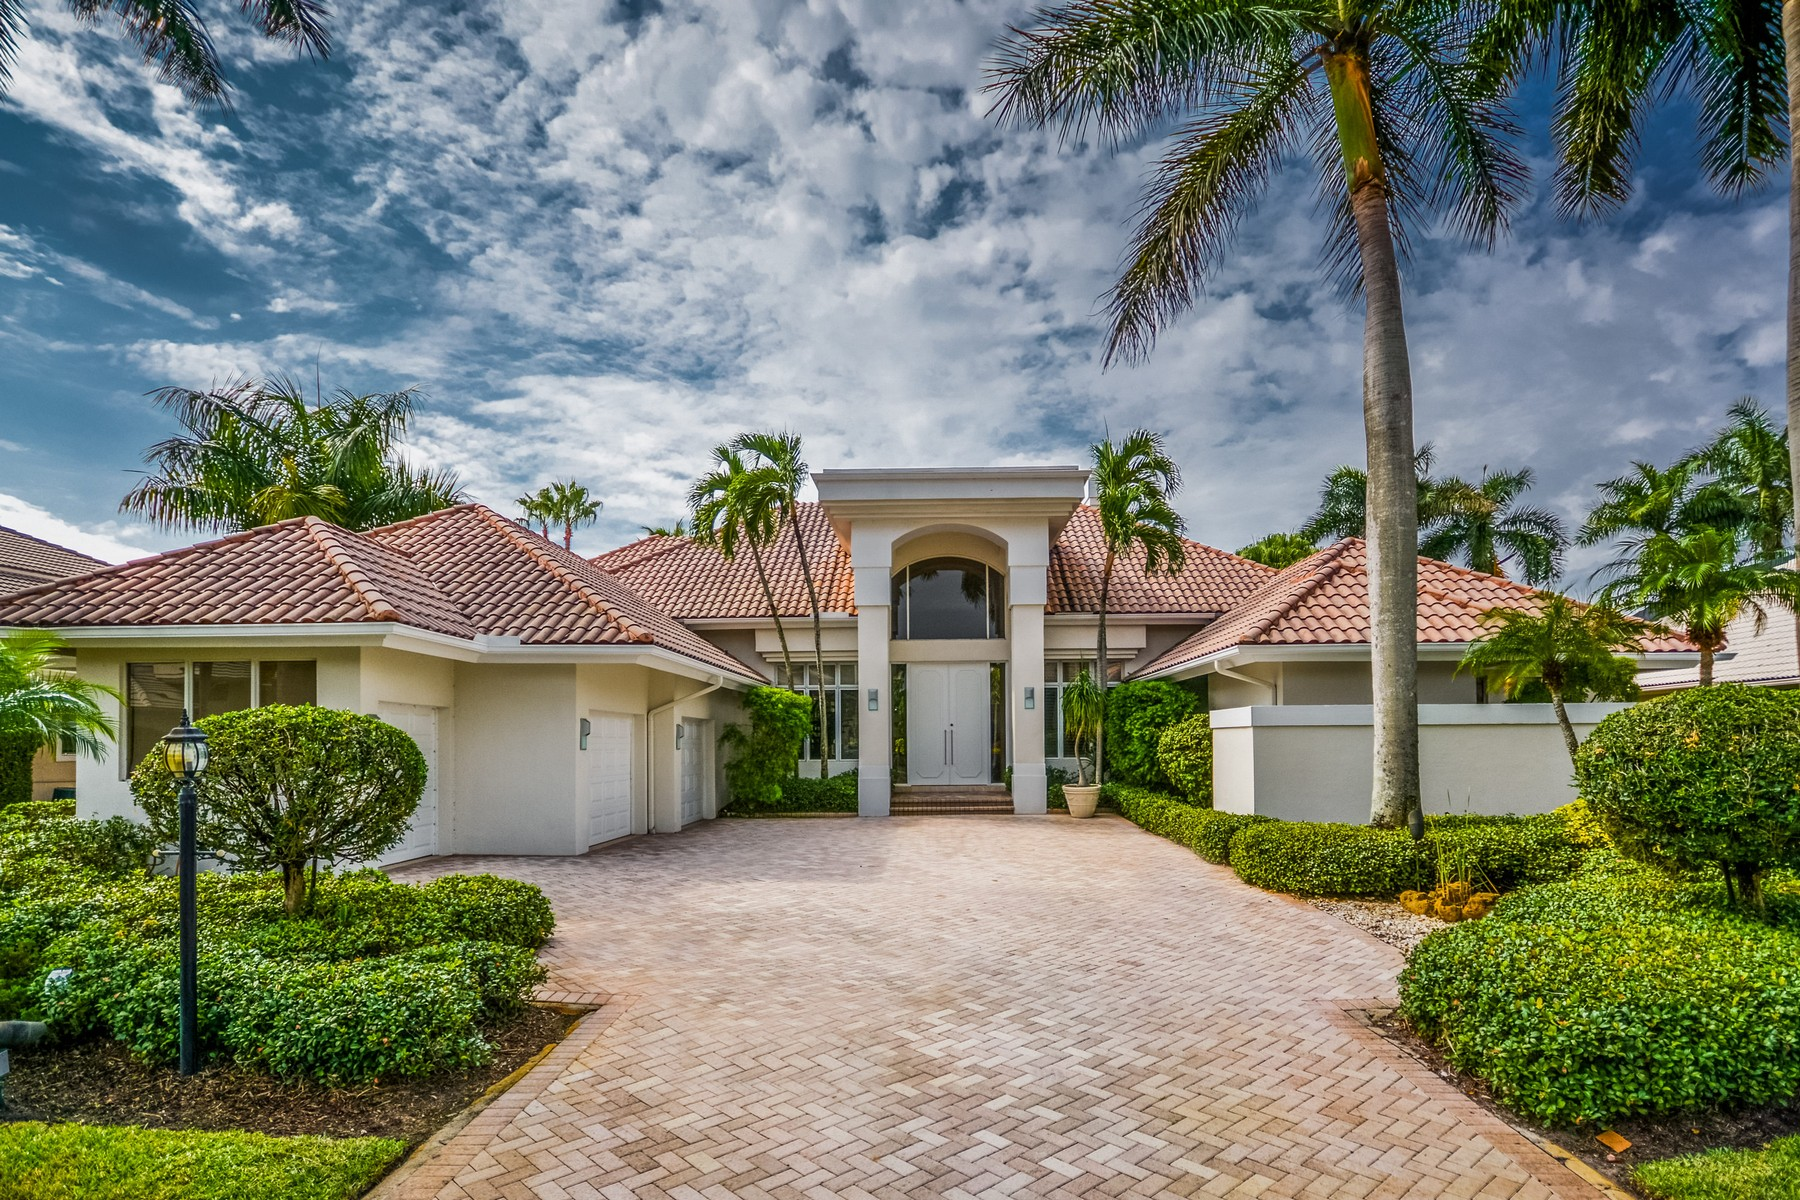 Single Family Home for Sale at 7244 Queenferry Cir , Boca Raton, FL 33496 7244 Queenferry Cir Boca Raton, Florida, 33496 United States